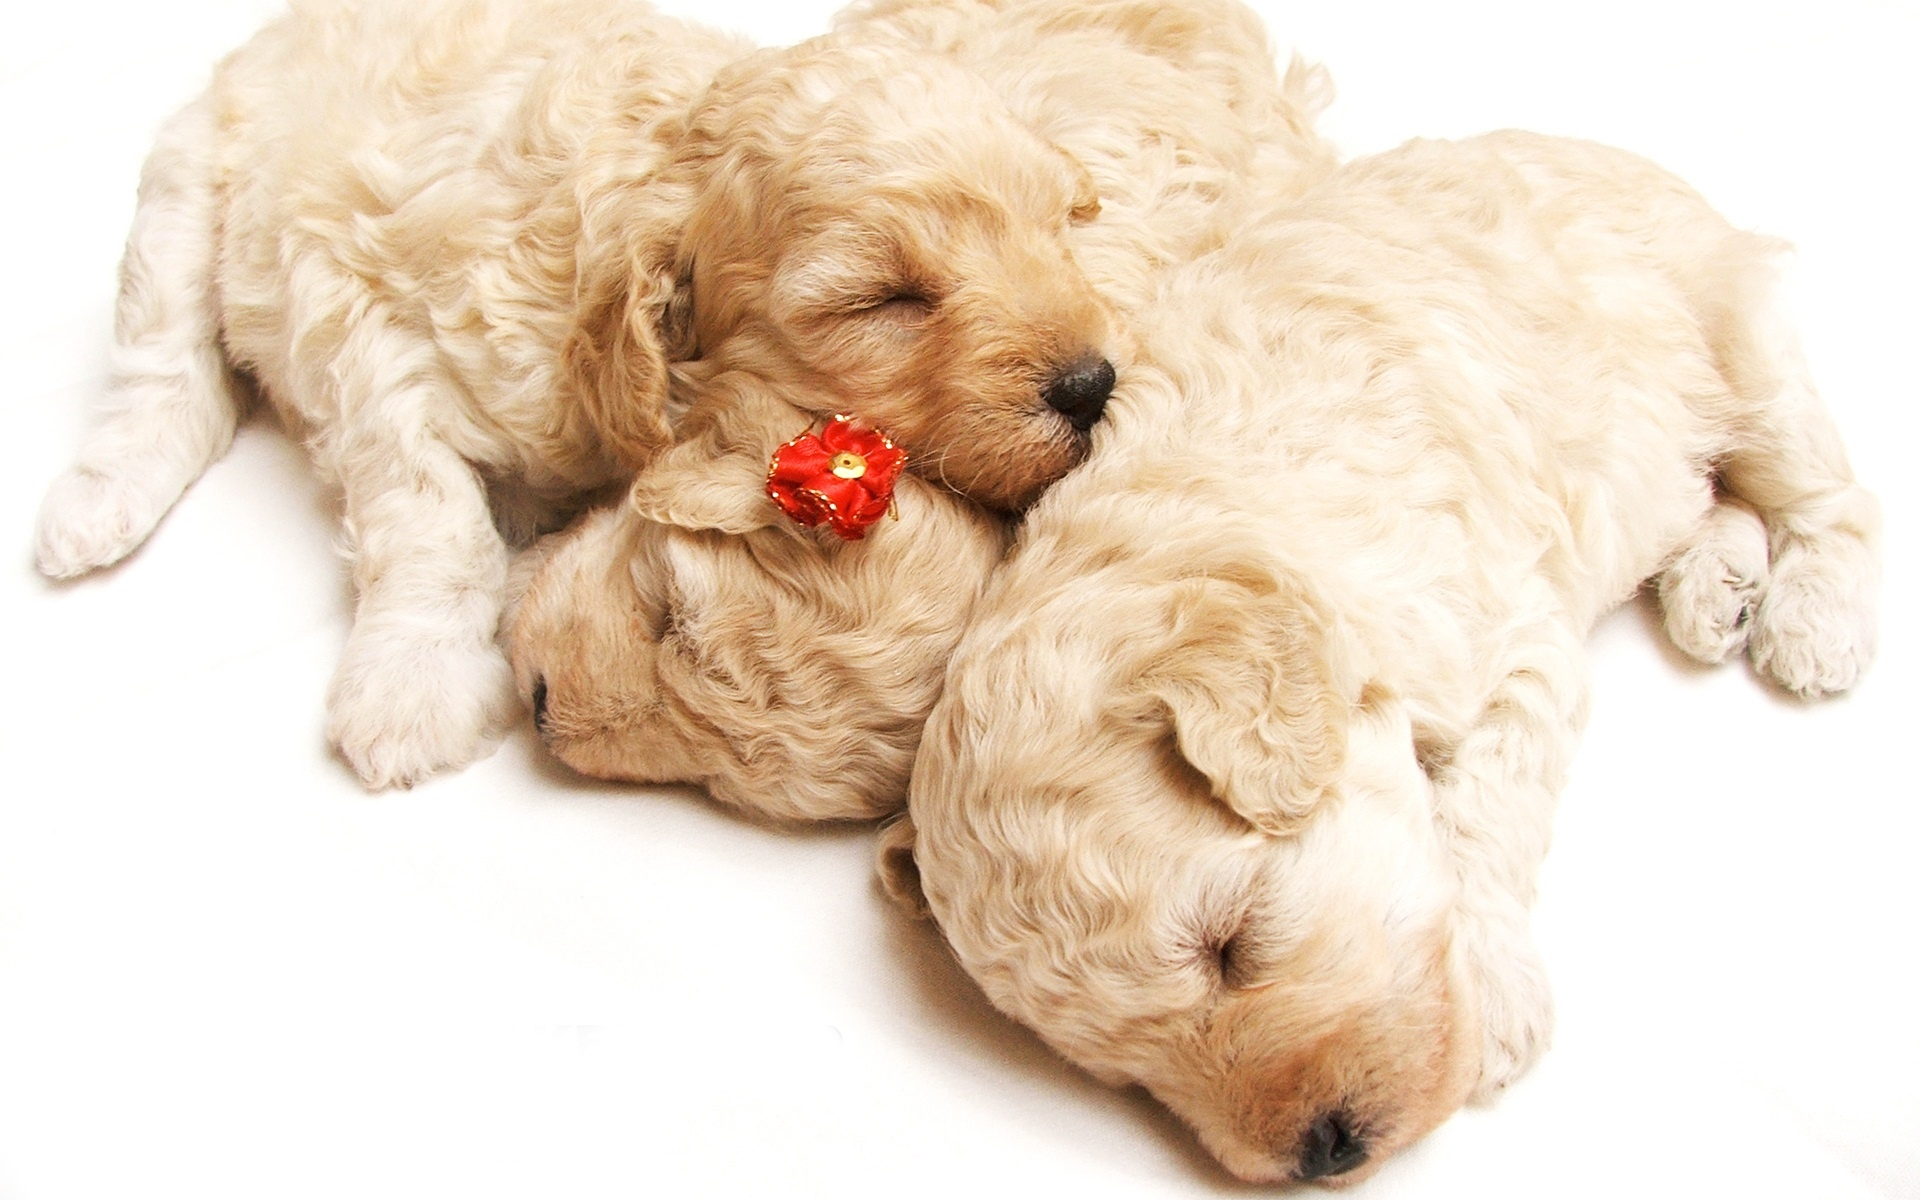 Cute Sleeping Puppies Wallpapers In Jpg Format For Free Download